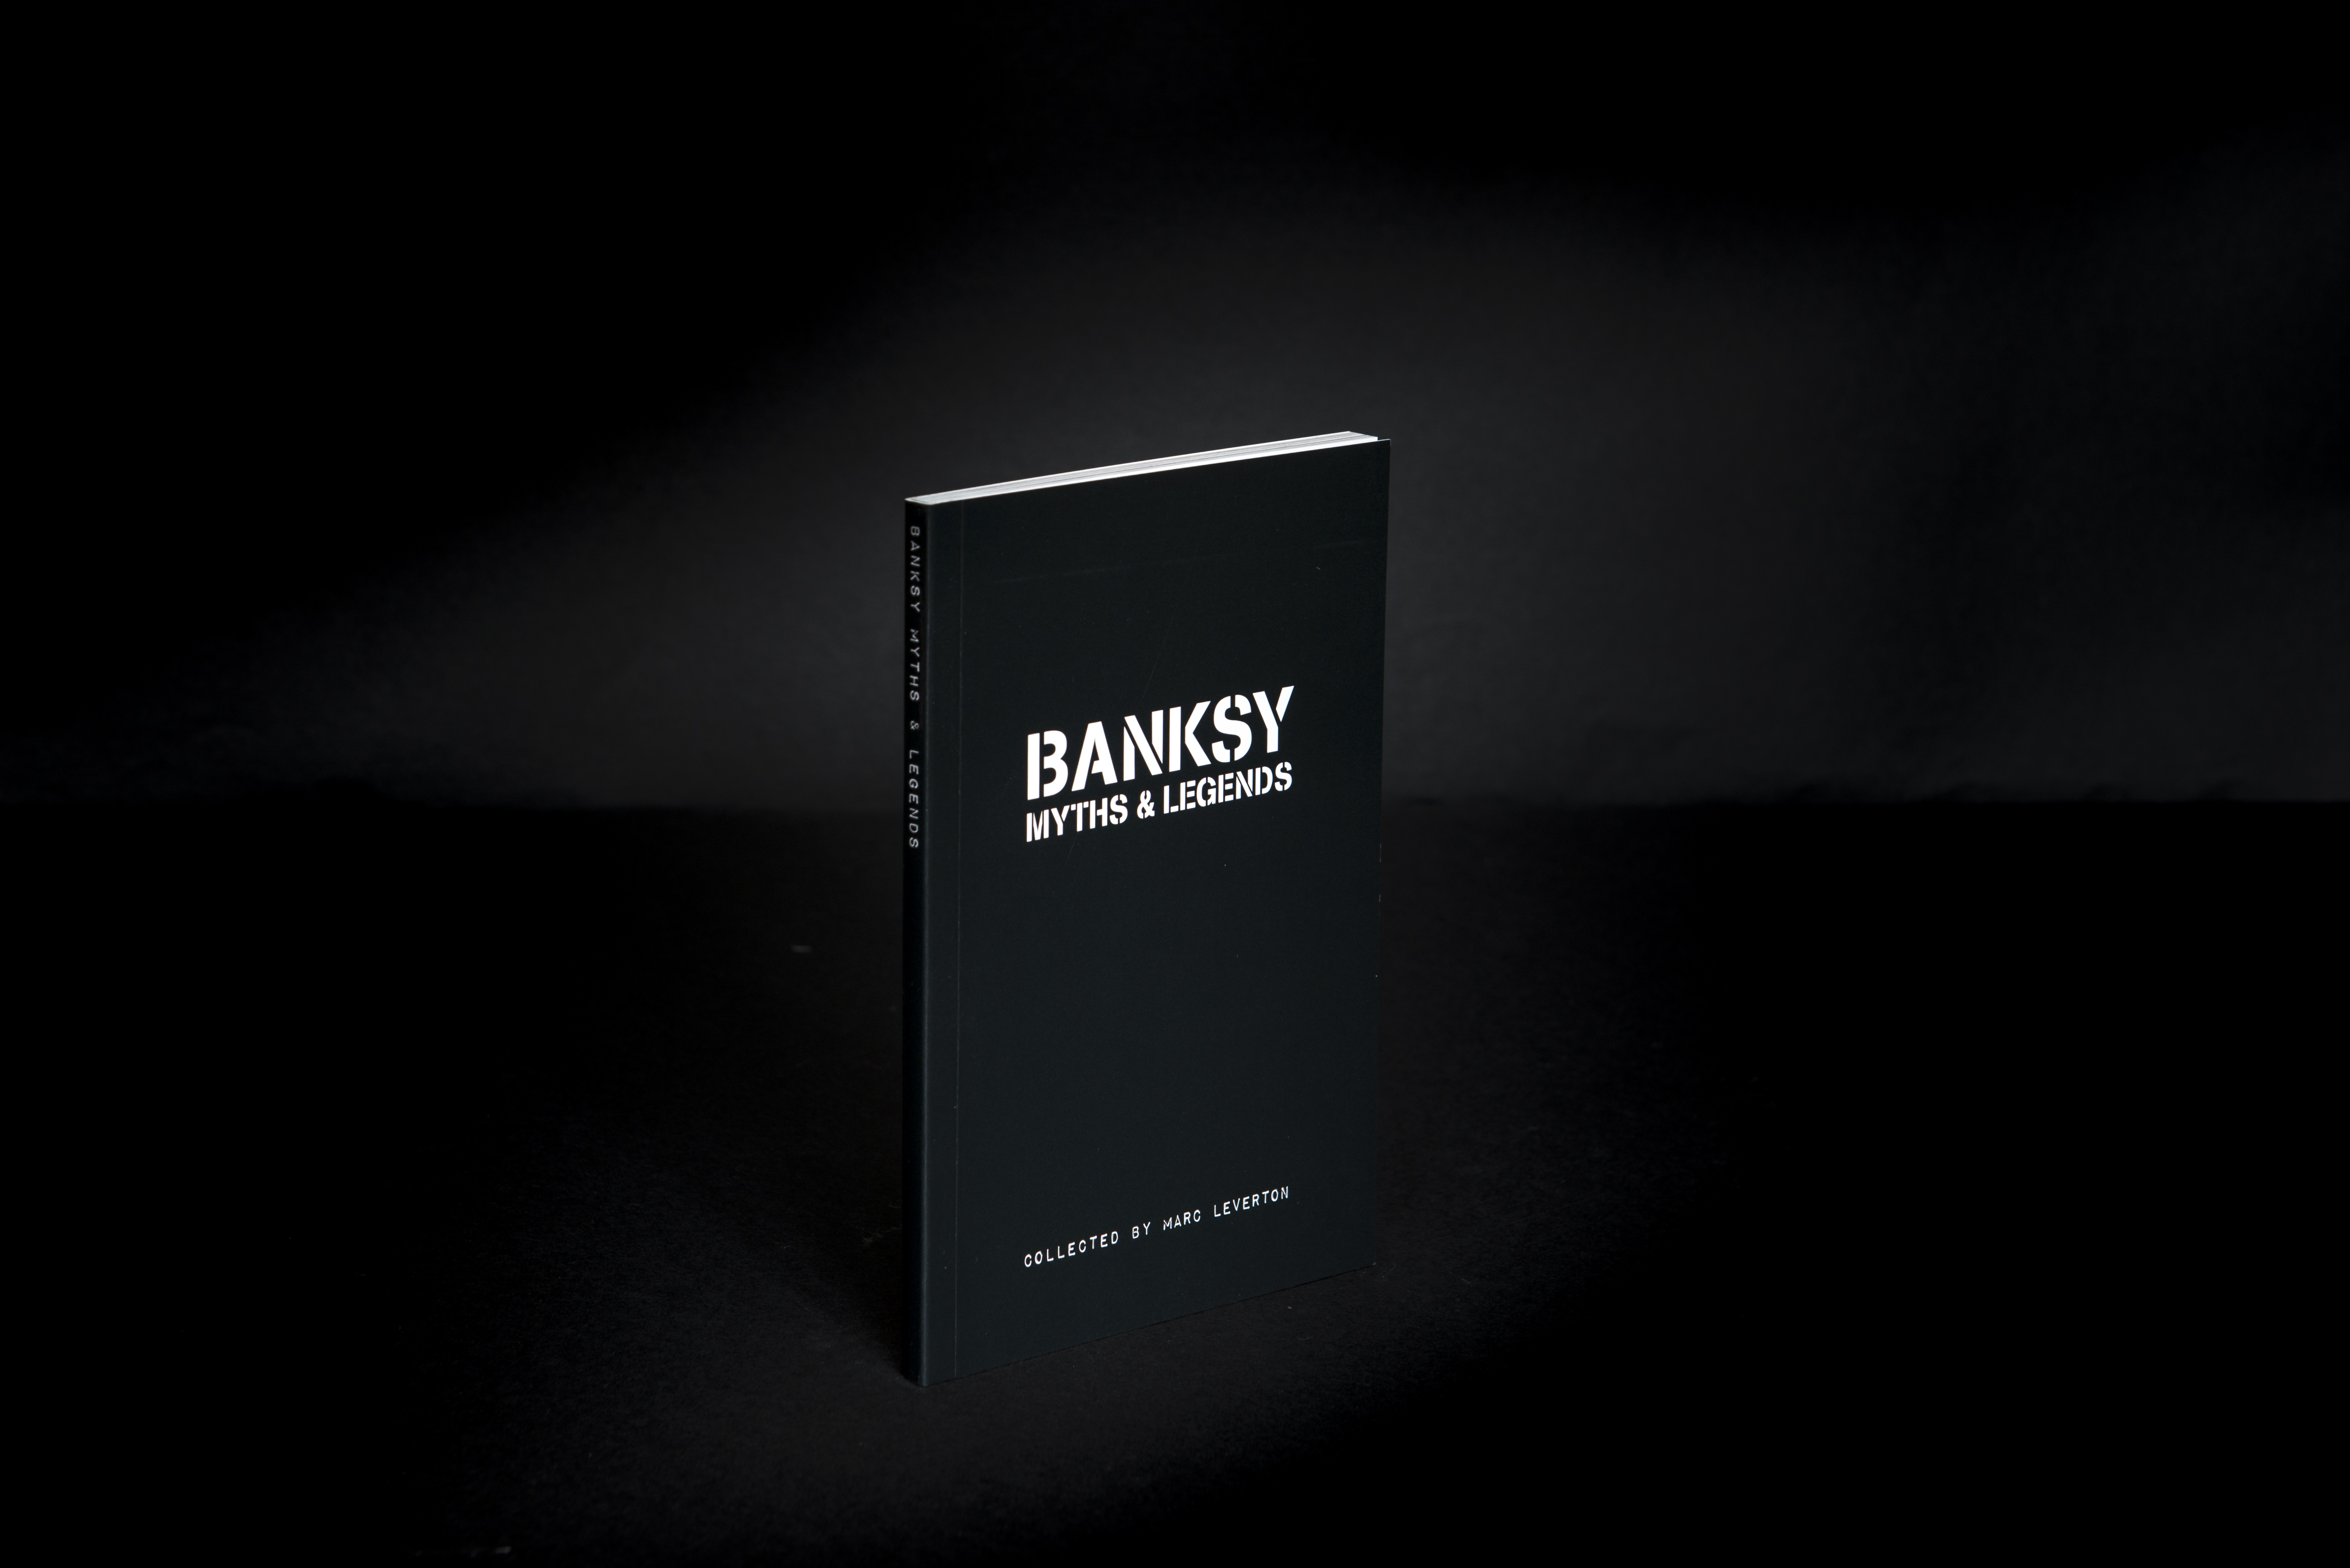 Banksy: Myths & Legends Vol 1